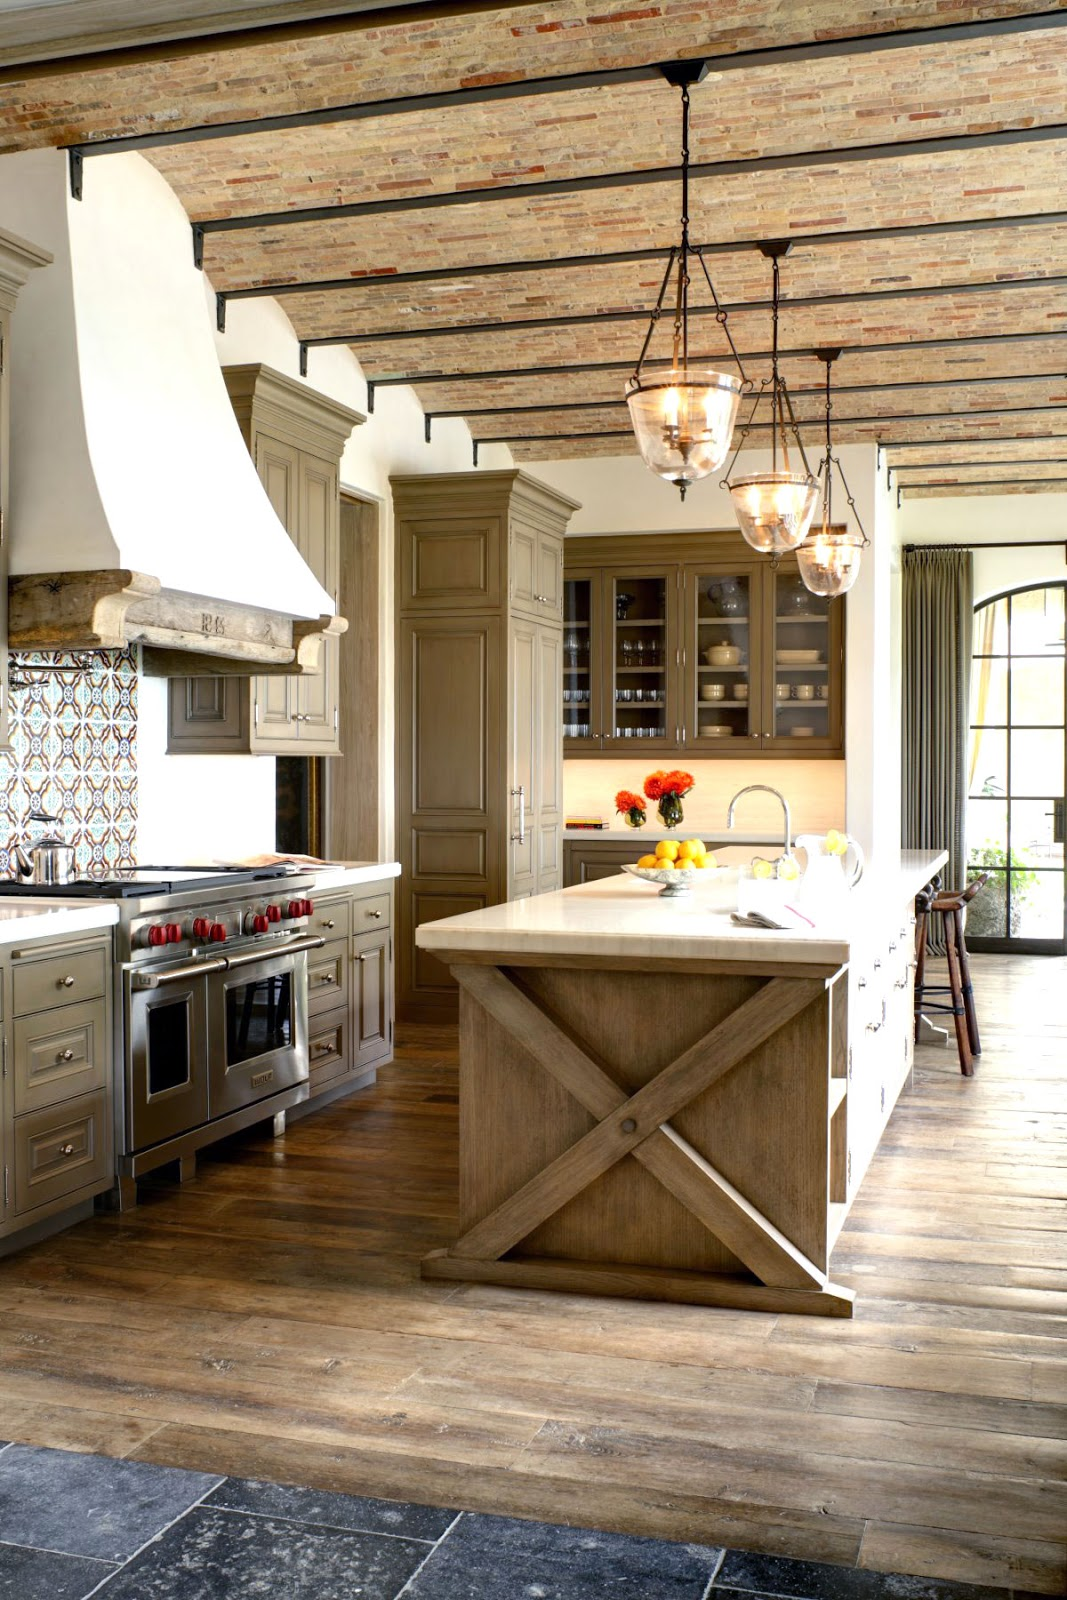 Kitchen with brick ceiling and rustic wood floor